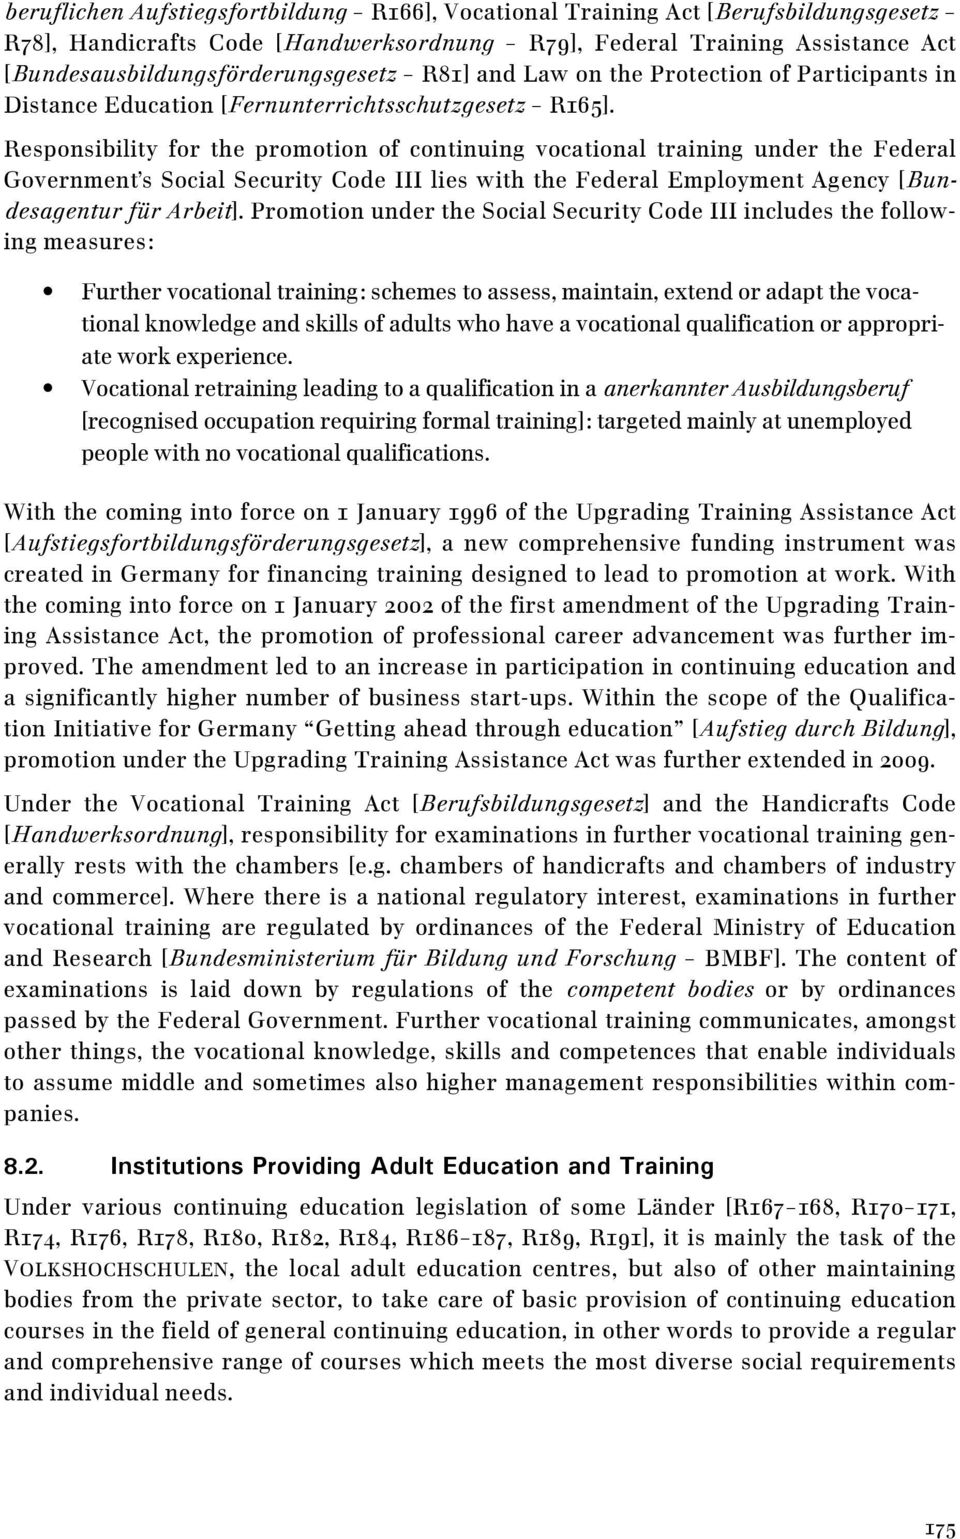 Responsibility for the promotion of continuing vocational training under the Federal Government's Social Security Code III lies with the Federal Employment Agency (Bundesagentur für Arbeit).